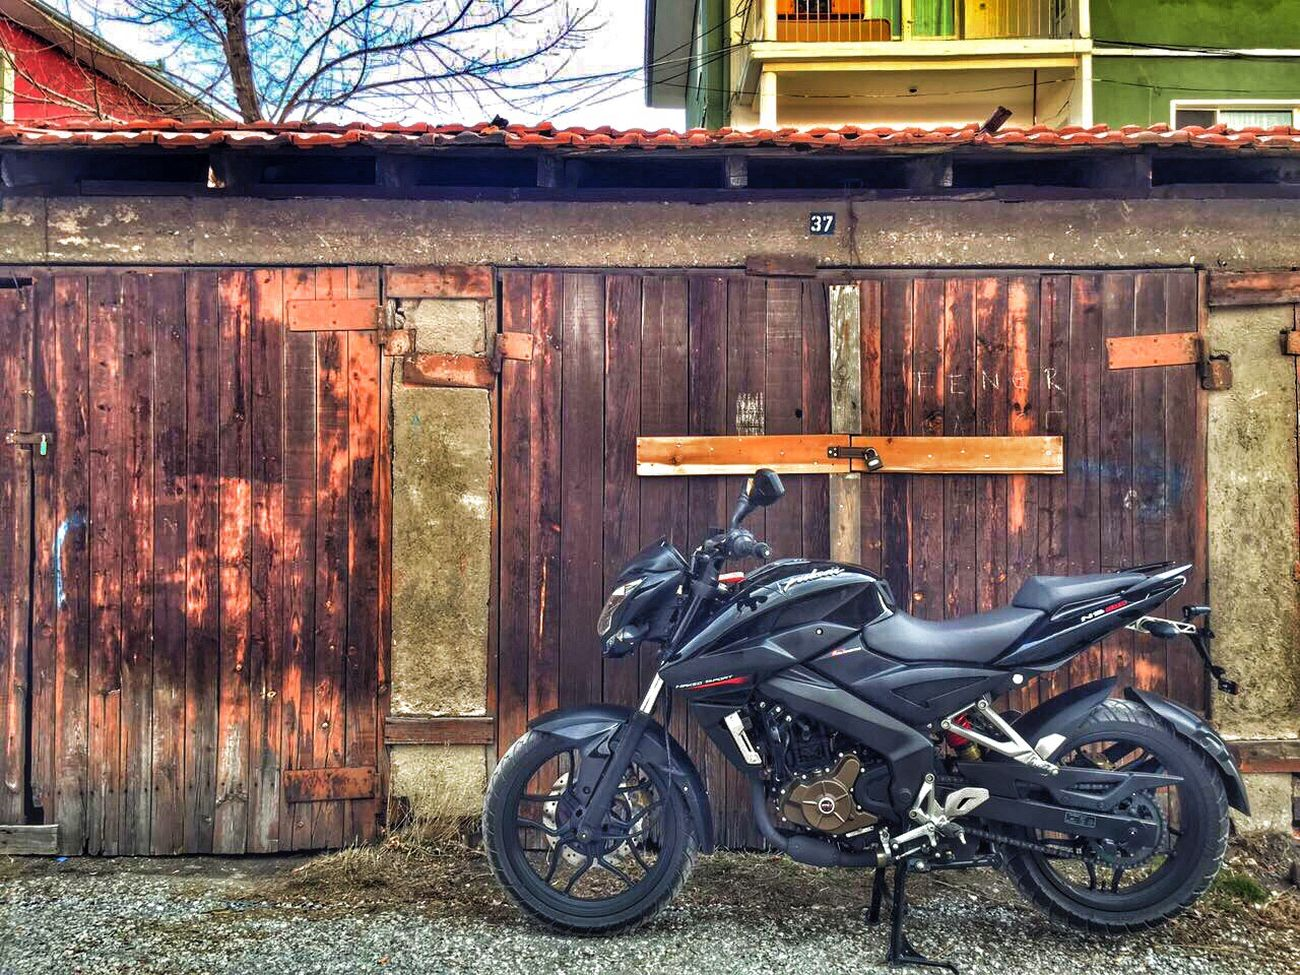 Moto Motorcycle Motorcycles Motorbike Motorsport Motor Bajaj Bajajpulsar Ns 200 BajajPulsarNs200 Black Turk Building Exterior Built Structure Architecture Stationary Outdoors Transportation Day Wood - Material No People First Eyeem Photo Türkiye Turkey